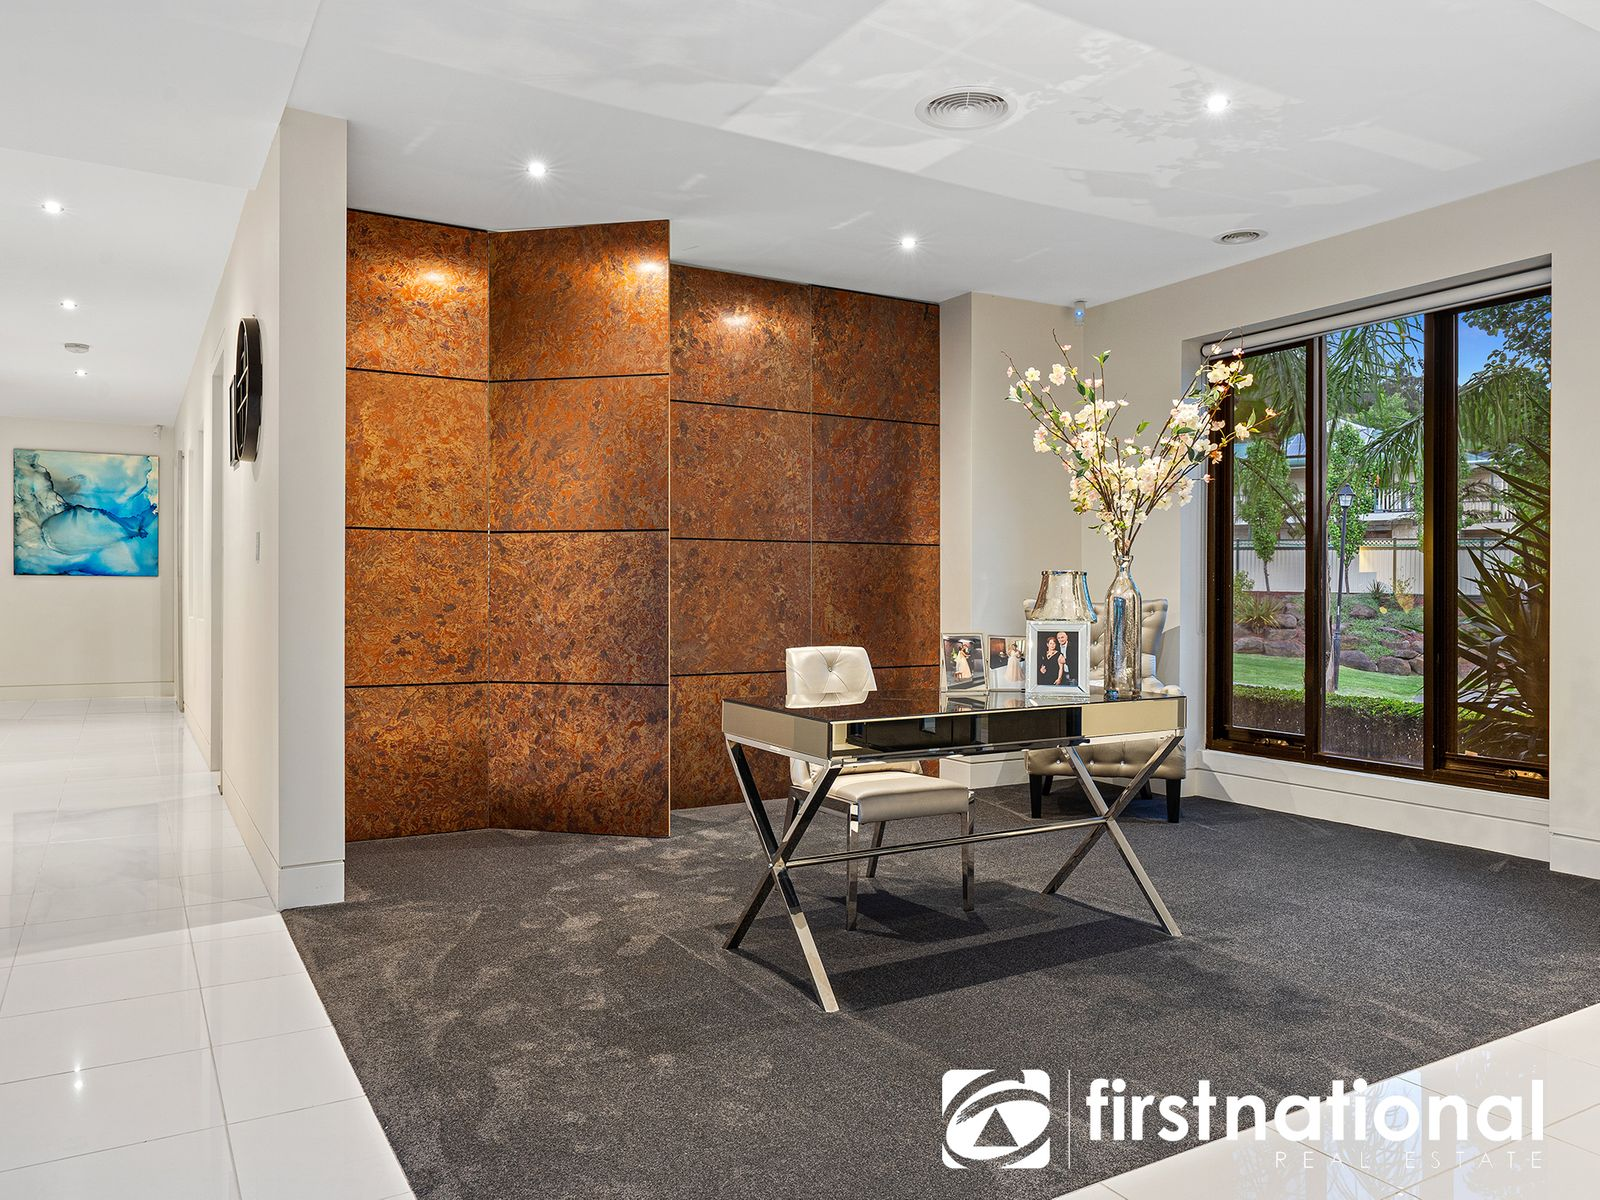 33-35 Timberside Drive, Beaconsfield, VIC 3807